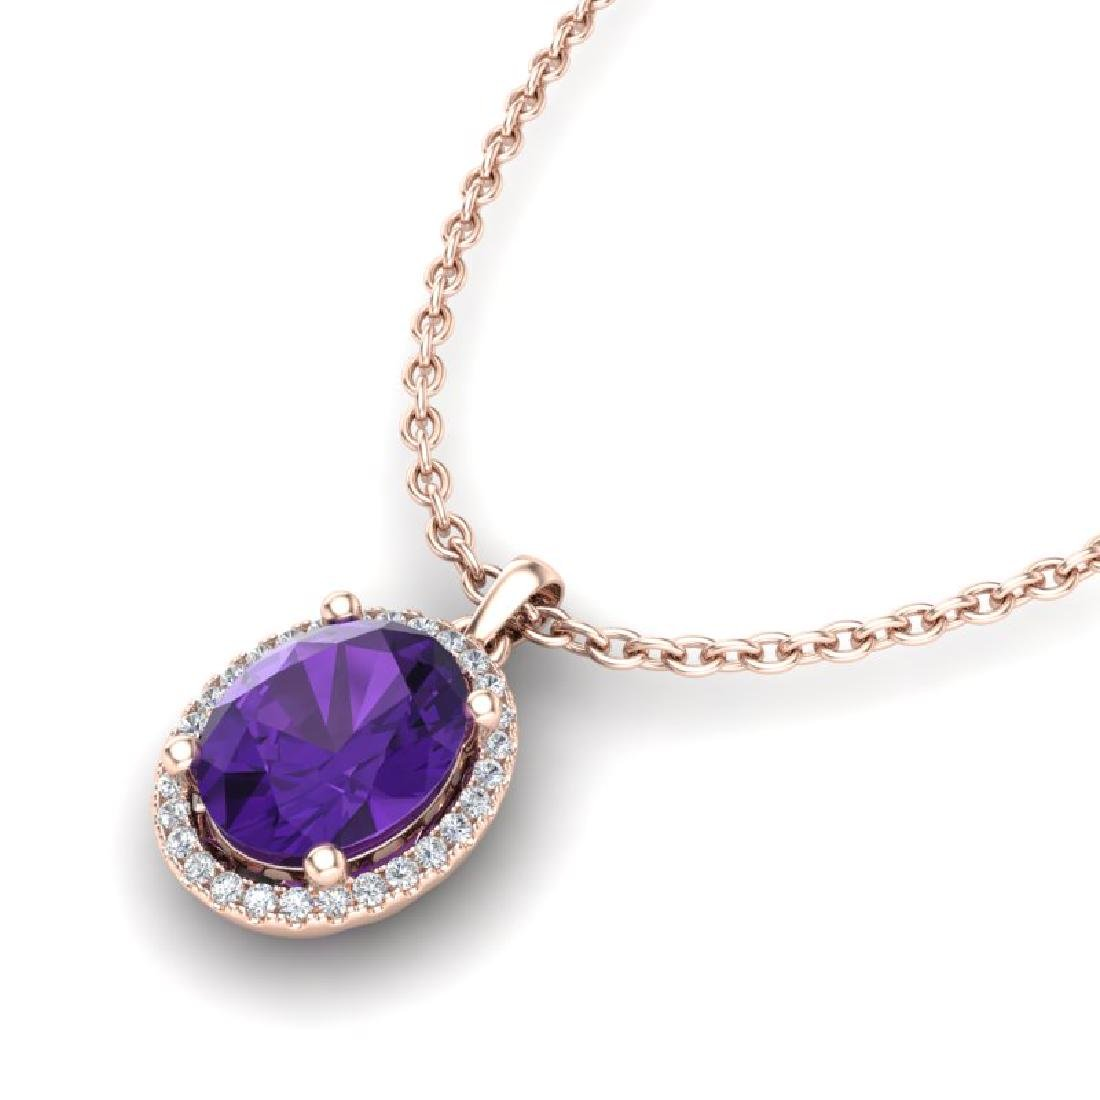 2.50 CTW Amethyst & Micro Pave VS/SI Diamond Necklace